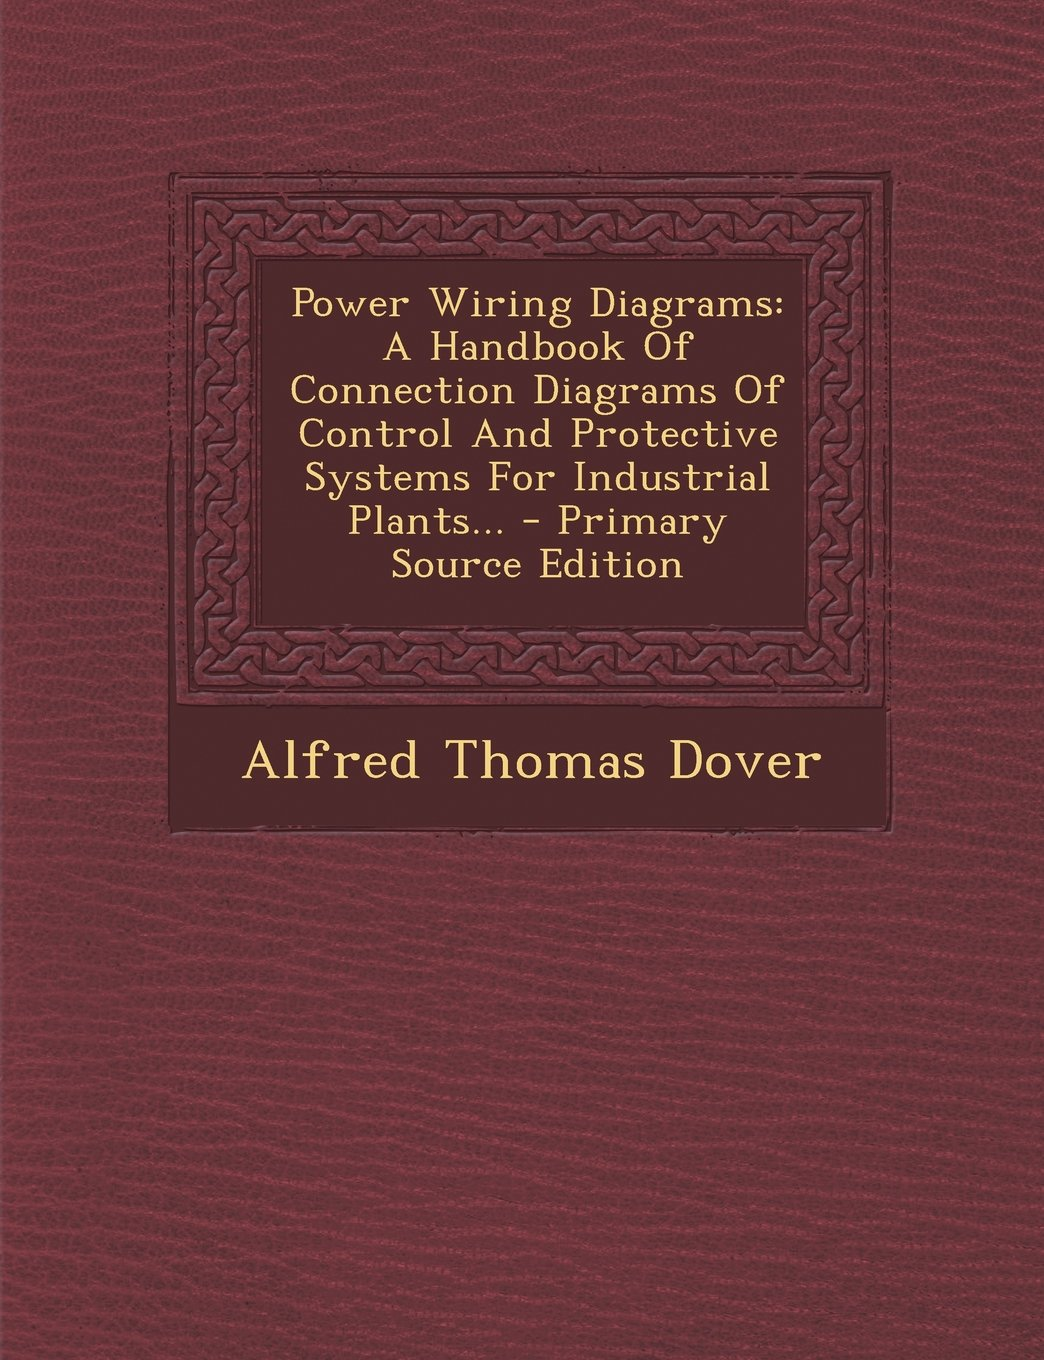 Buy Power Wiring Diagrams A Handbook Of Connection Thomas Control And Protective Systems For Industrial Plants